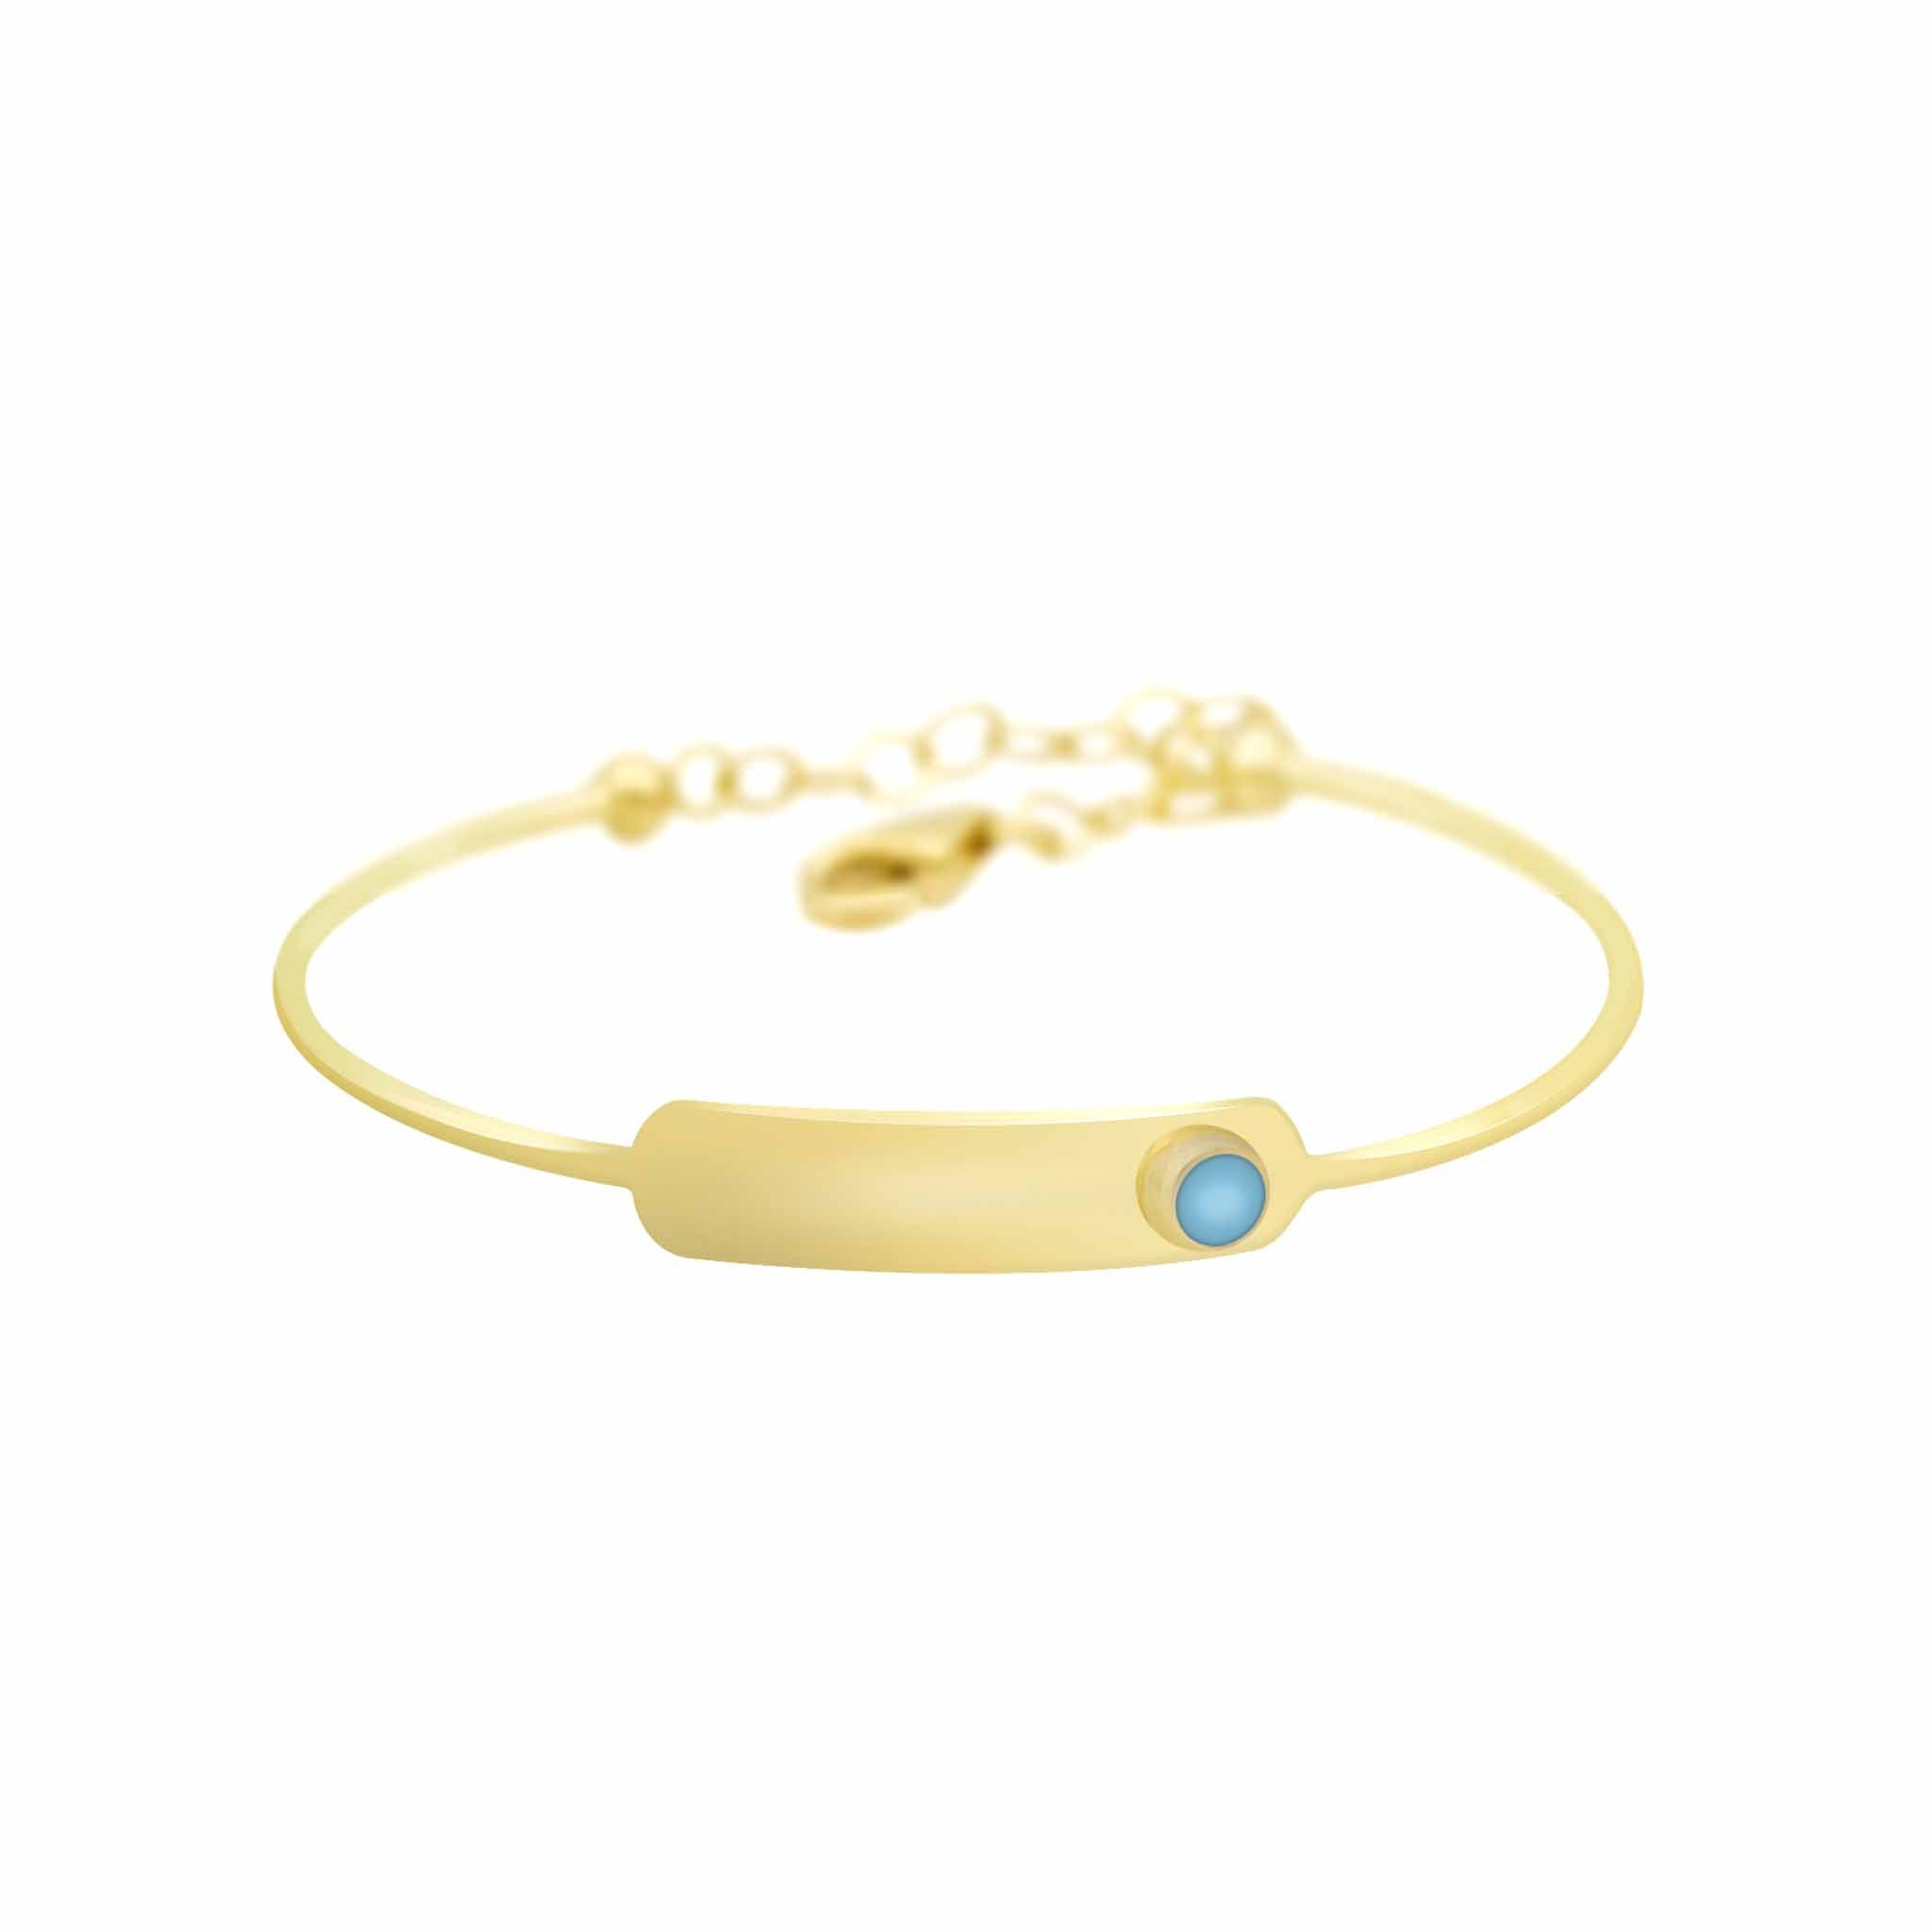 5mm Florentine Dome Classic Comfort Fit Bangle Bracelet Real 14K Yellow Gold